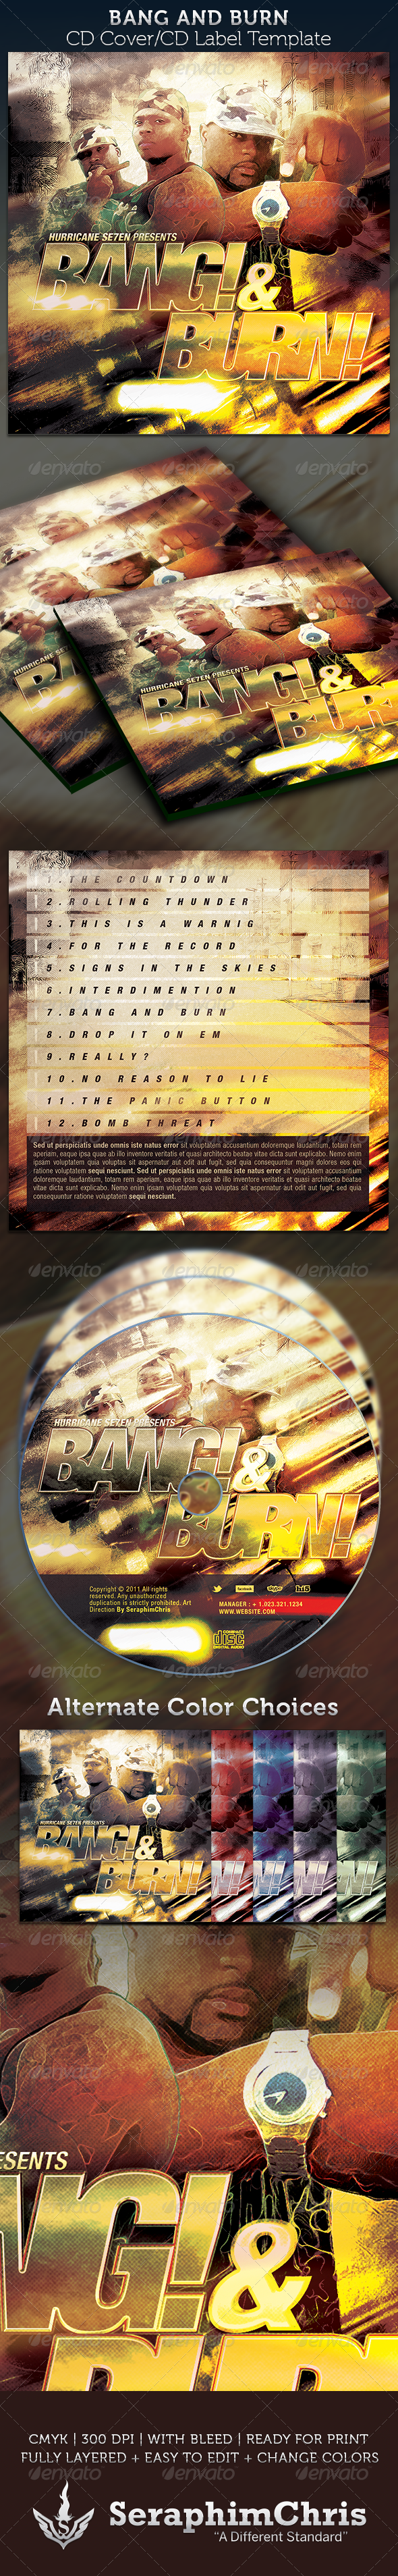 Bang &amp; Burn CD Cover Artwork Template - CD &amp; DVD artwork Print Templates